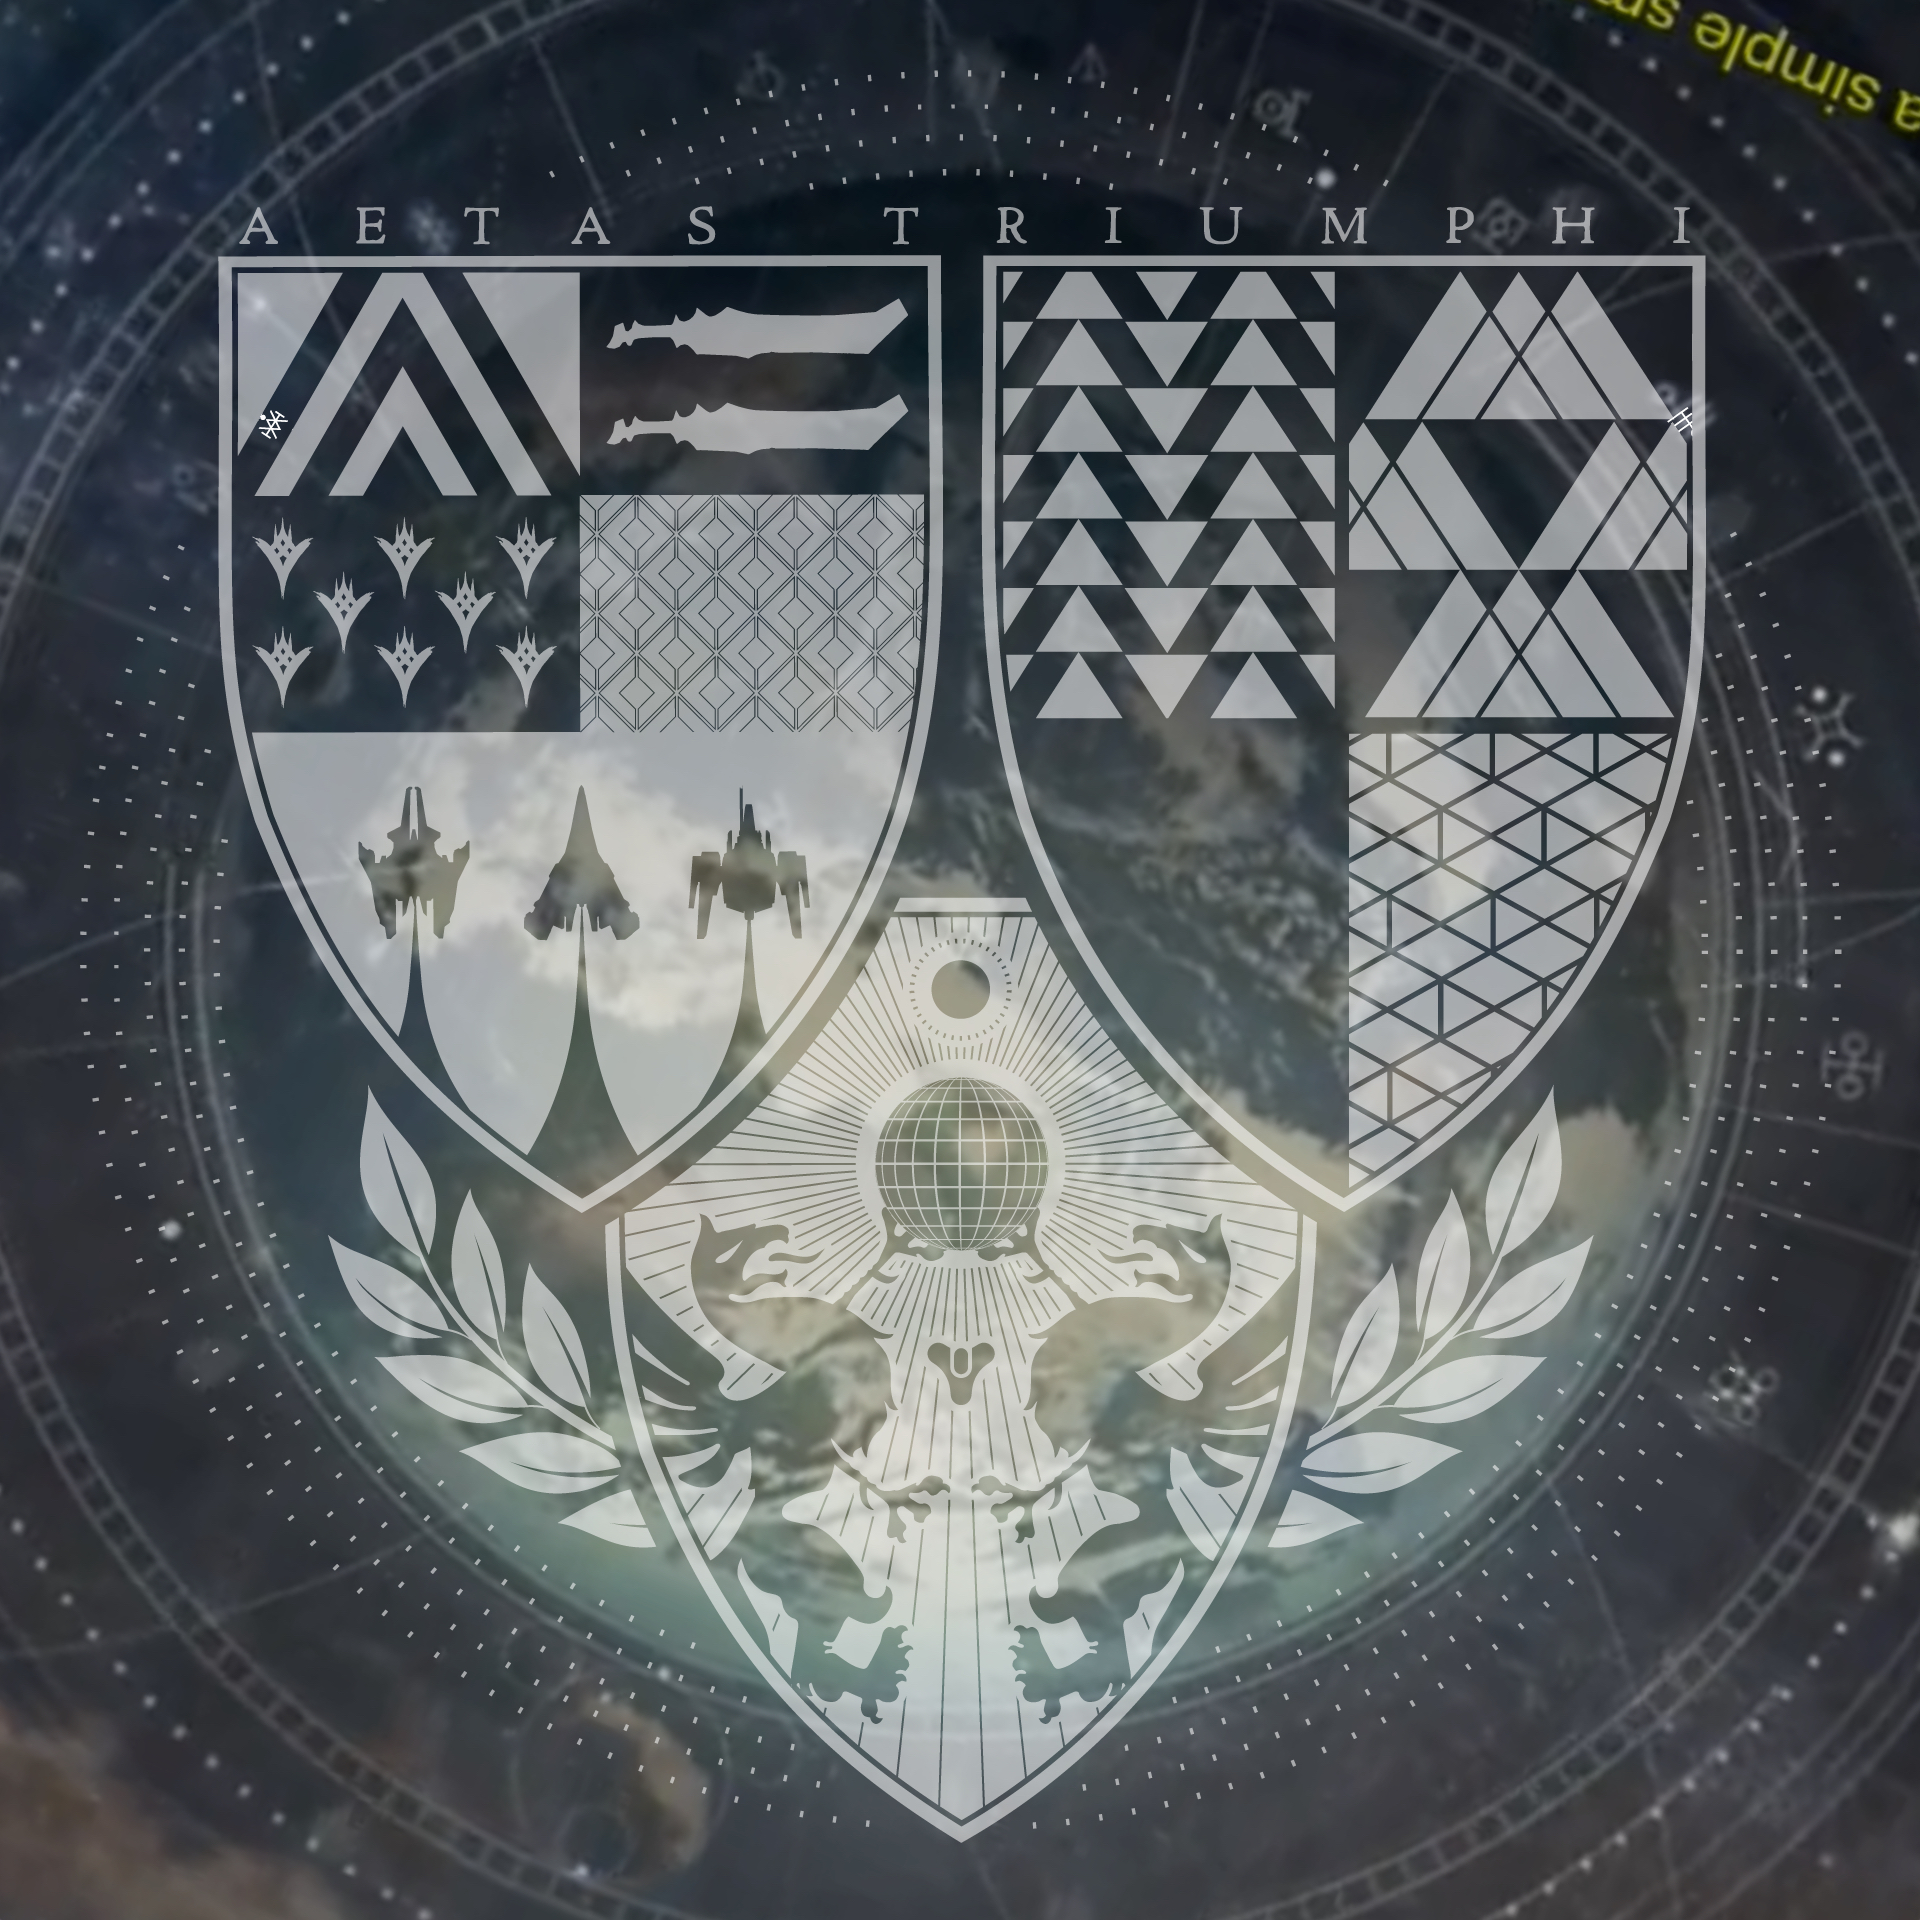 Strange Symbols In Age Of Triumph Logo Lore Commons